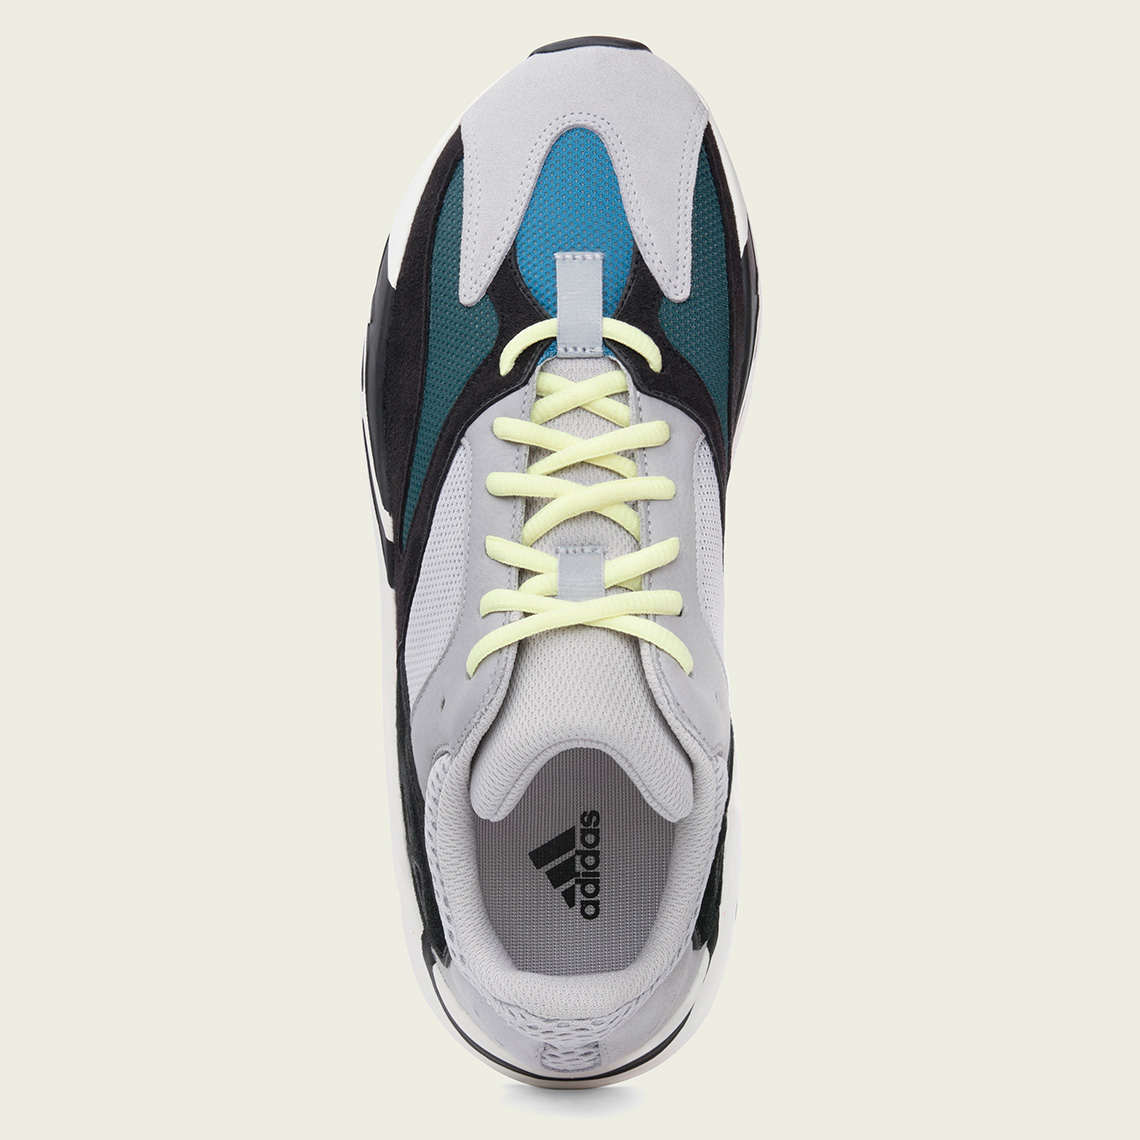 adidas Yeezy Boost 700 Official Release